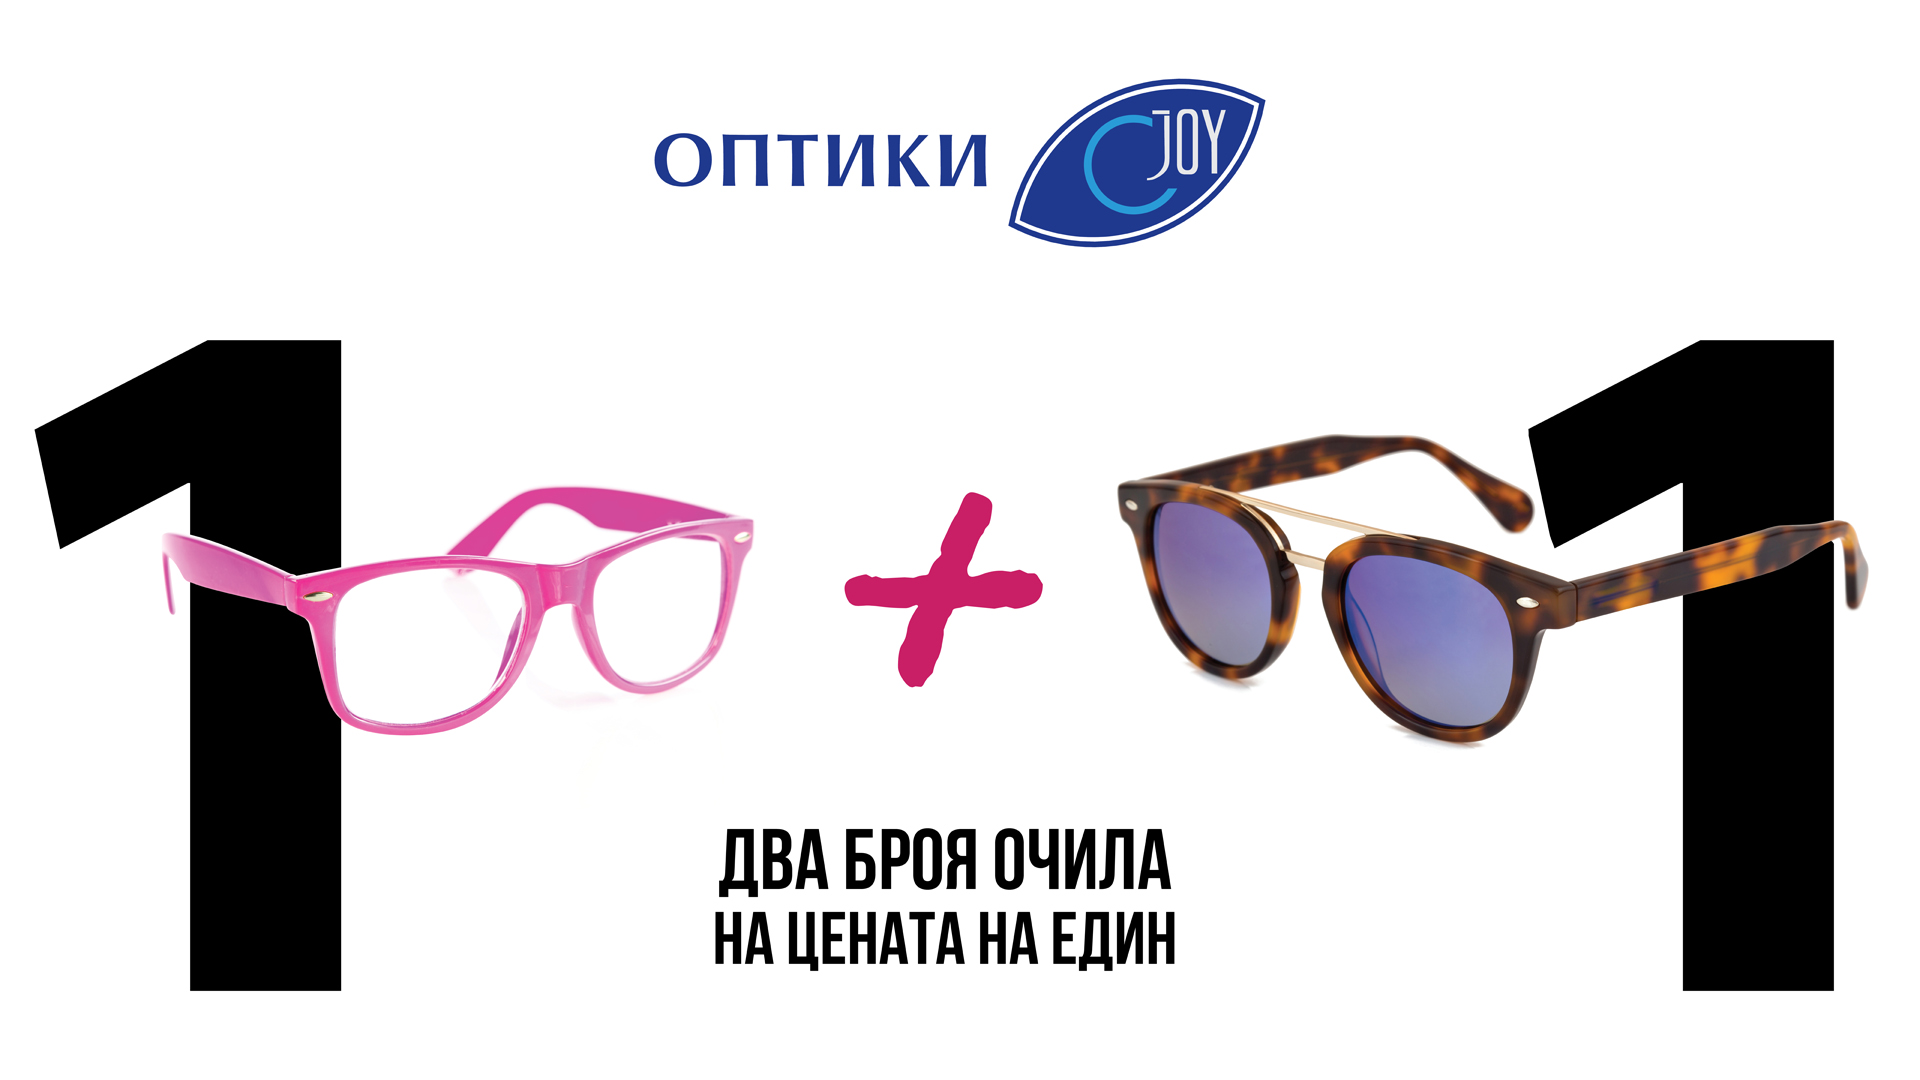 1+1 Get 2 pairs of glasses and pay only 1!